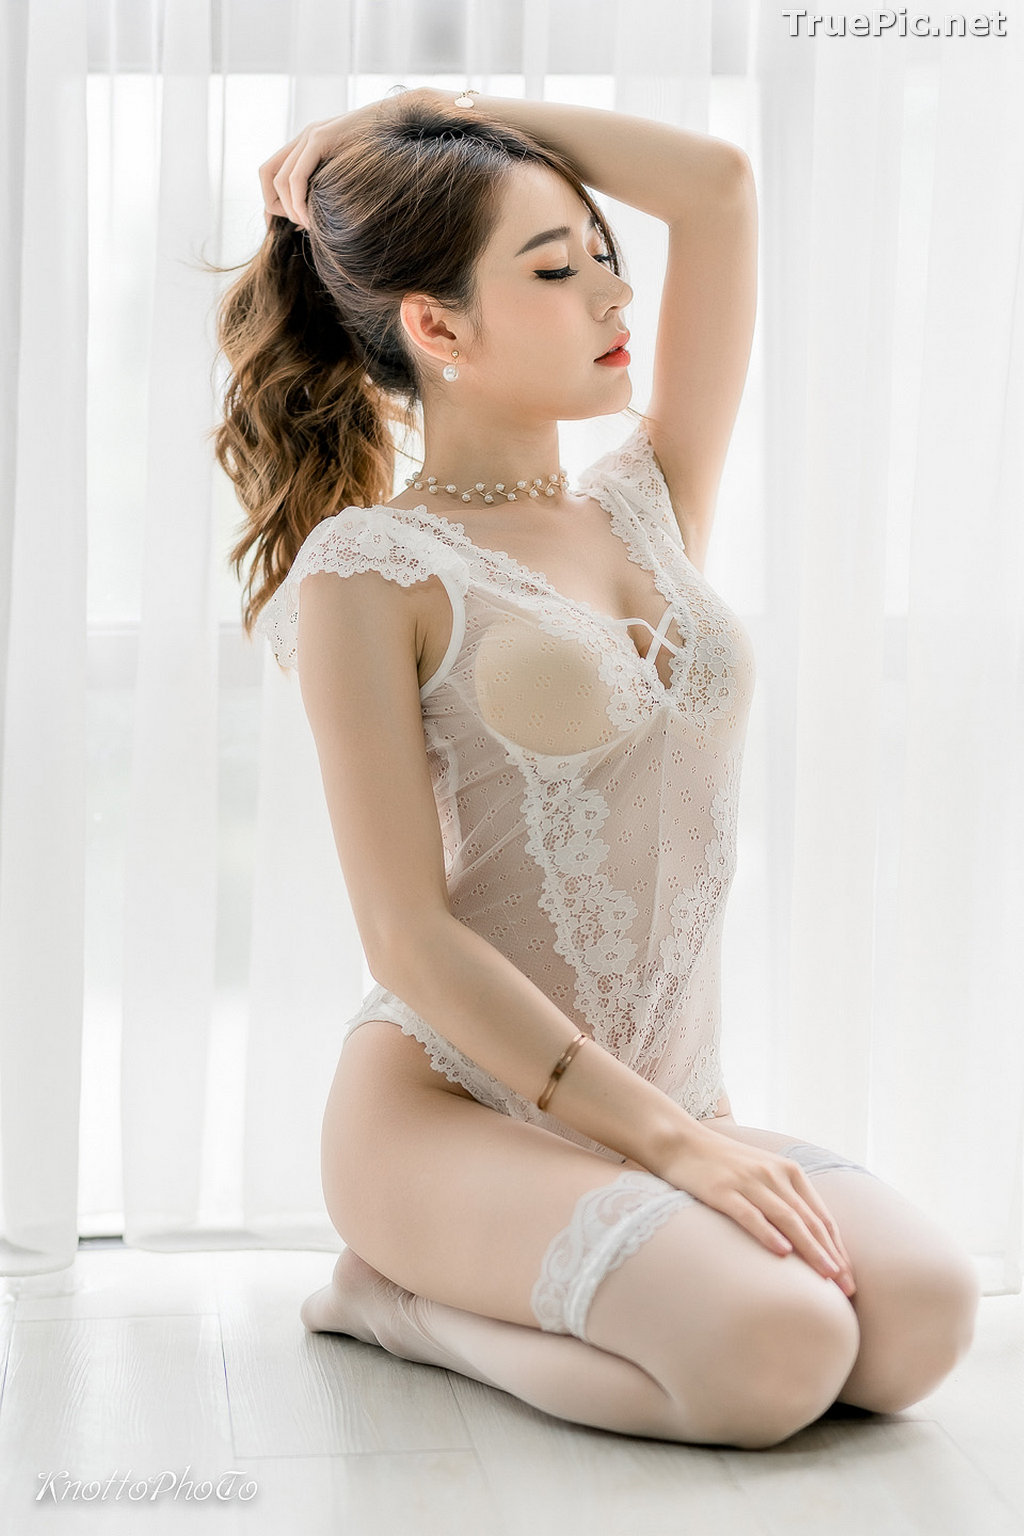 Image Thailand Hot Beauty Model - Thipsuda Jitaree - White Lace Underwear - TruePic.net - Picture-4